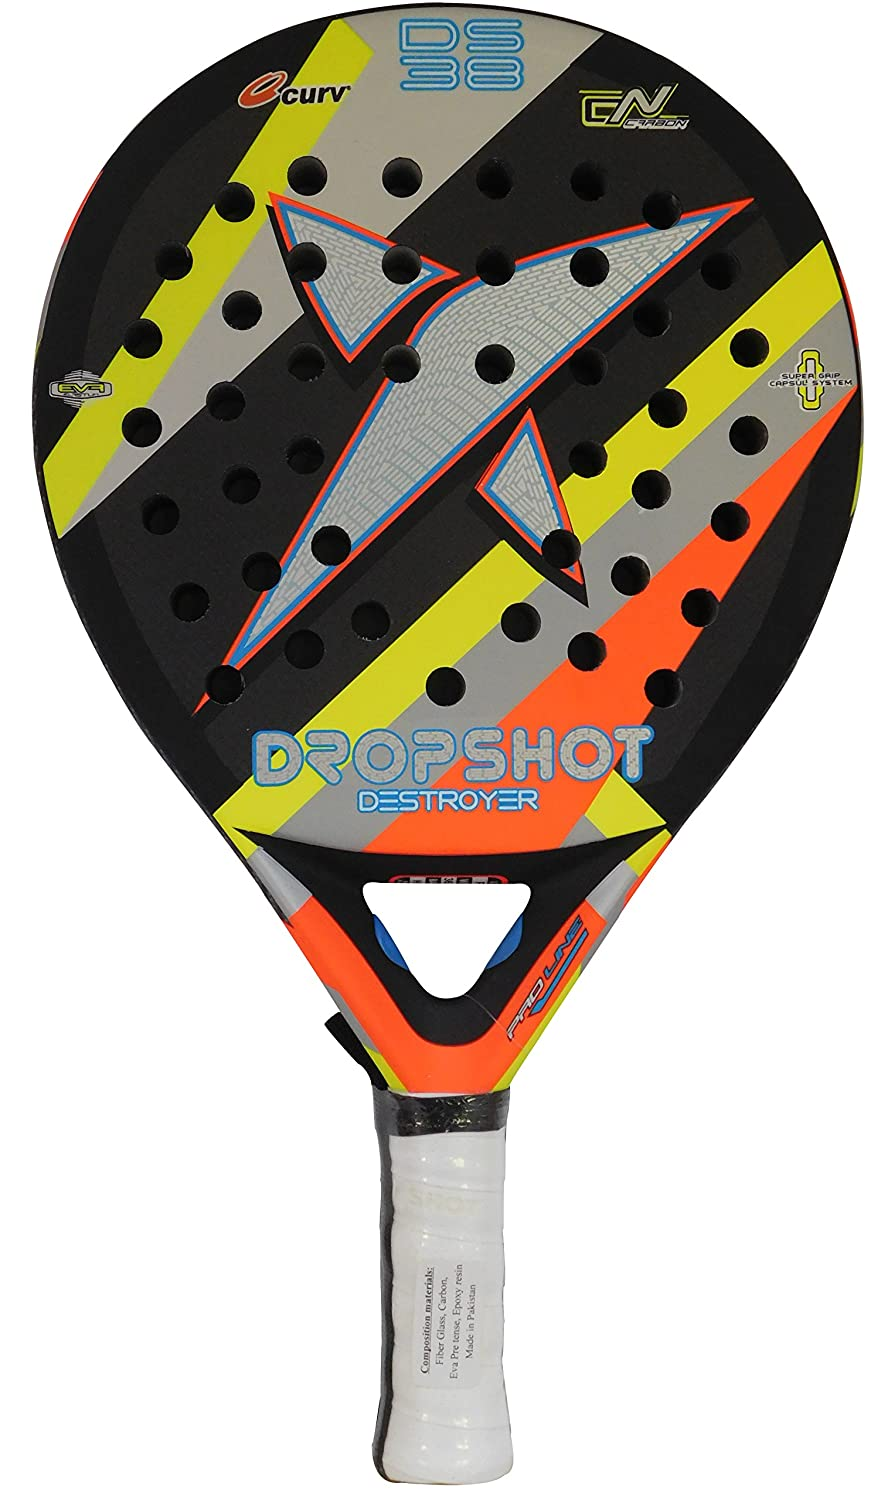 DROP SHOT Destroyer Pala de Pádel, Negro, Talla Única ...